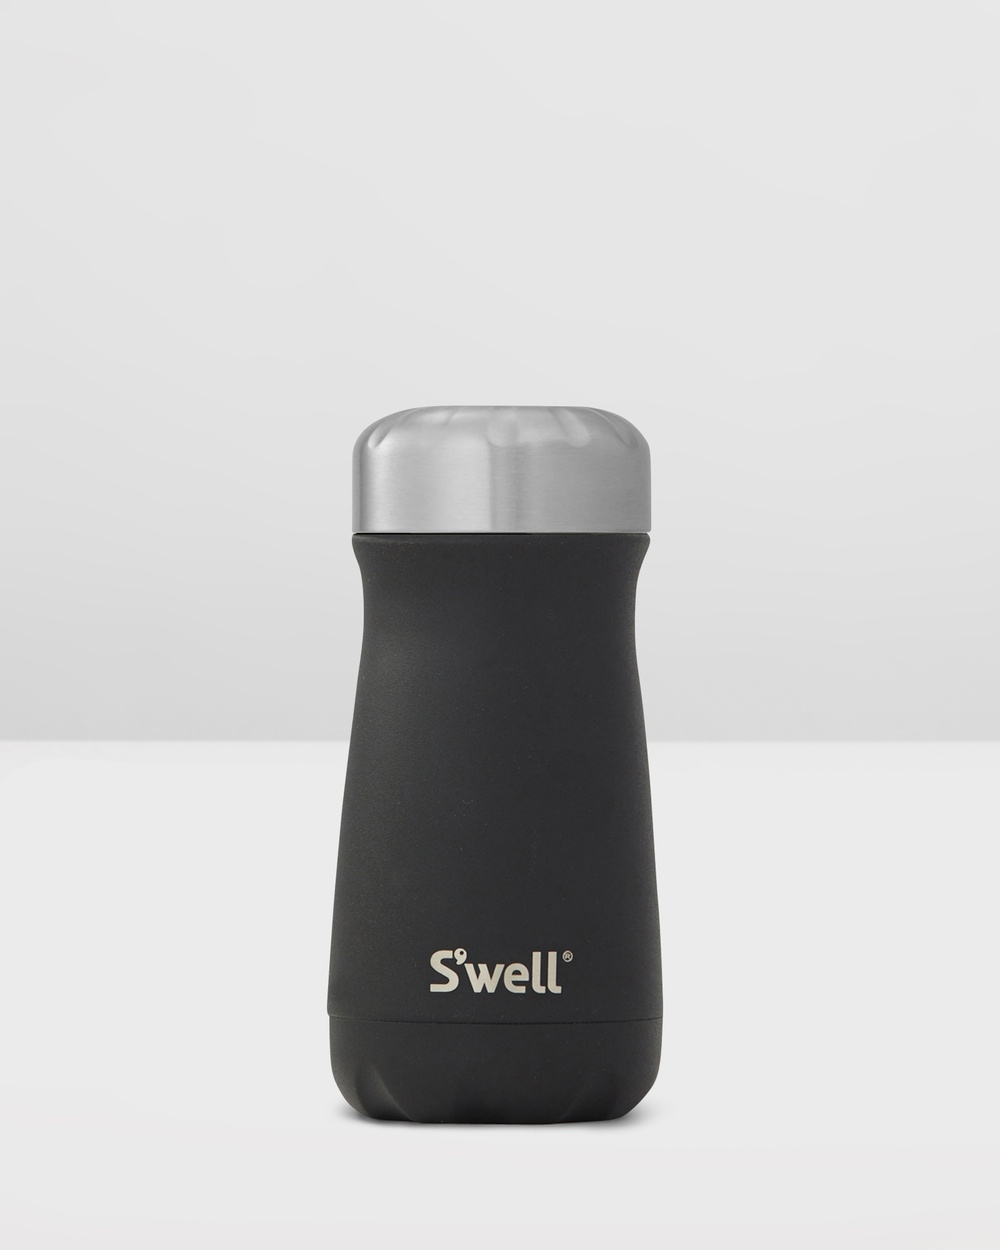 S'well Traveller Stone Collection 350ml Onyx Water Bottles Black